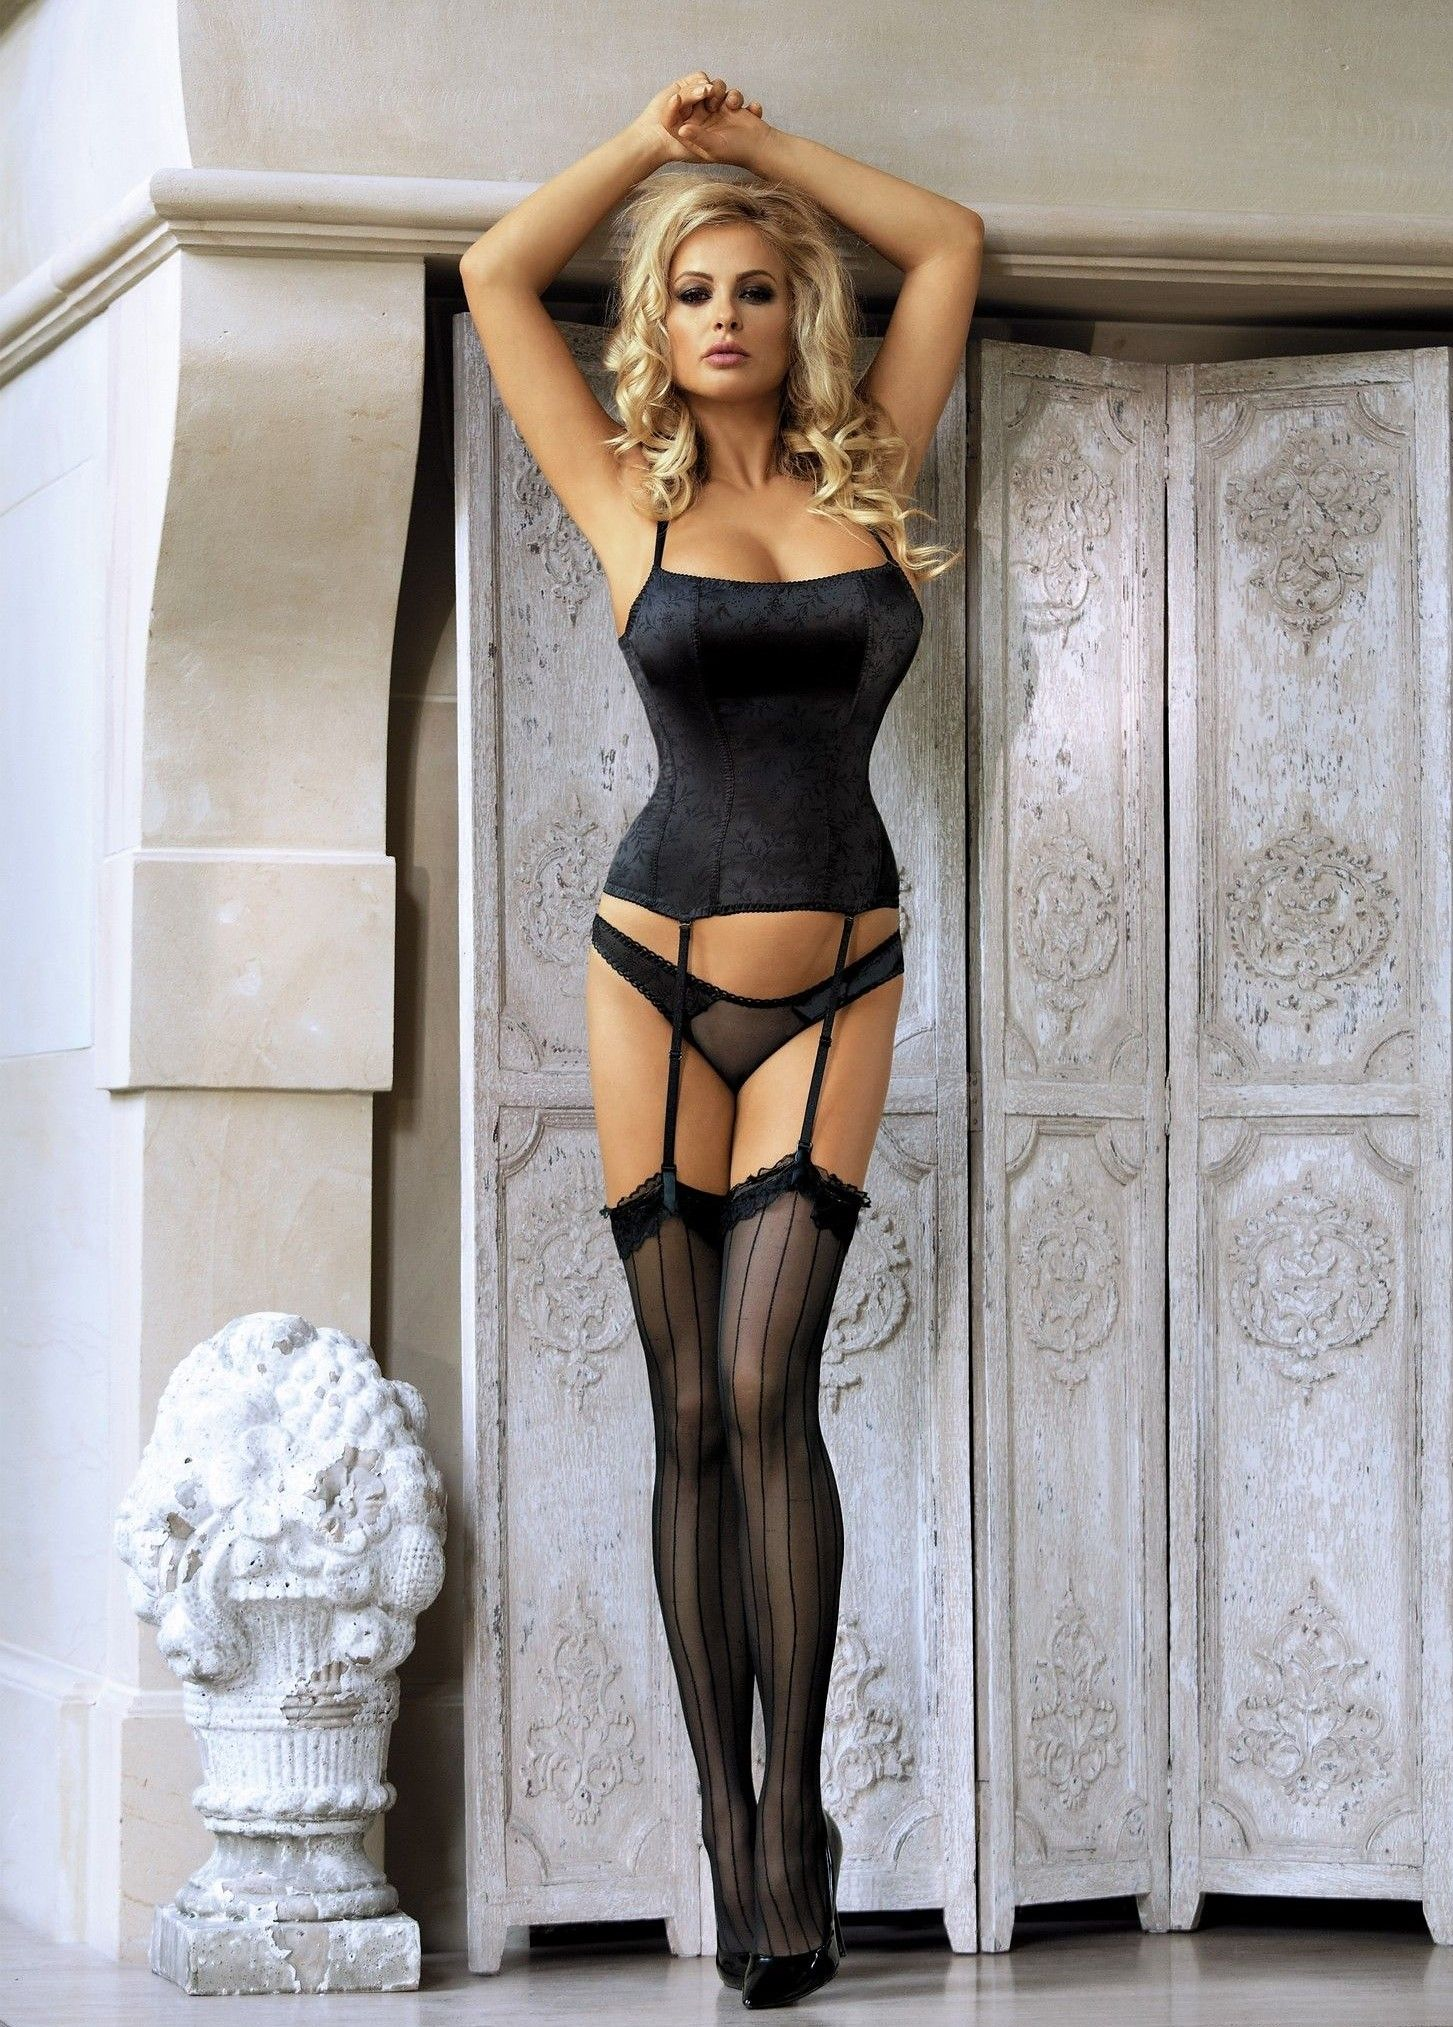 Sexy woman in dresses stockings